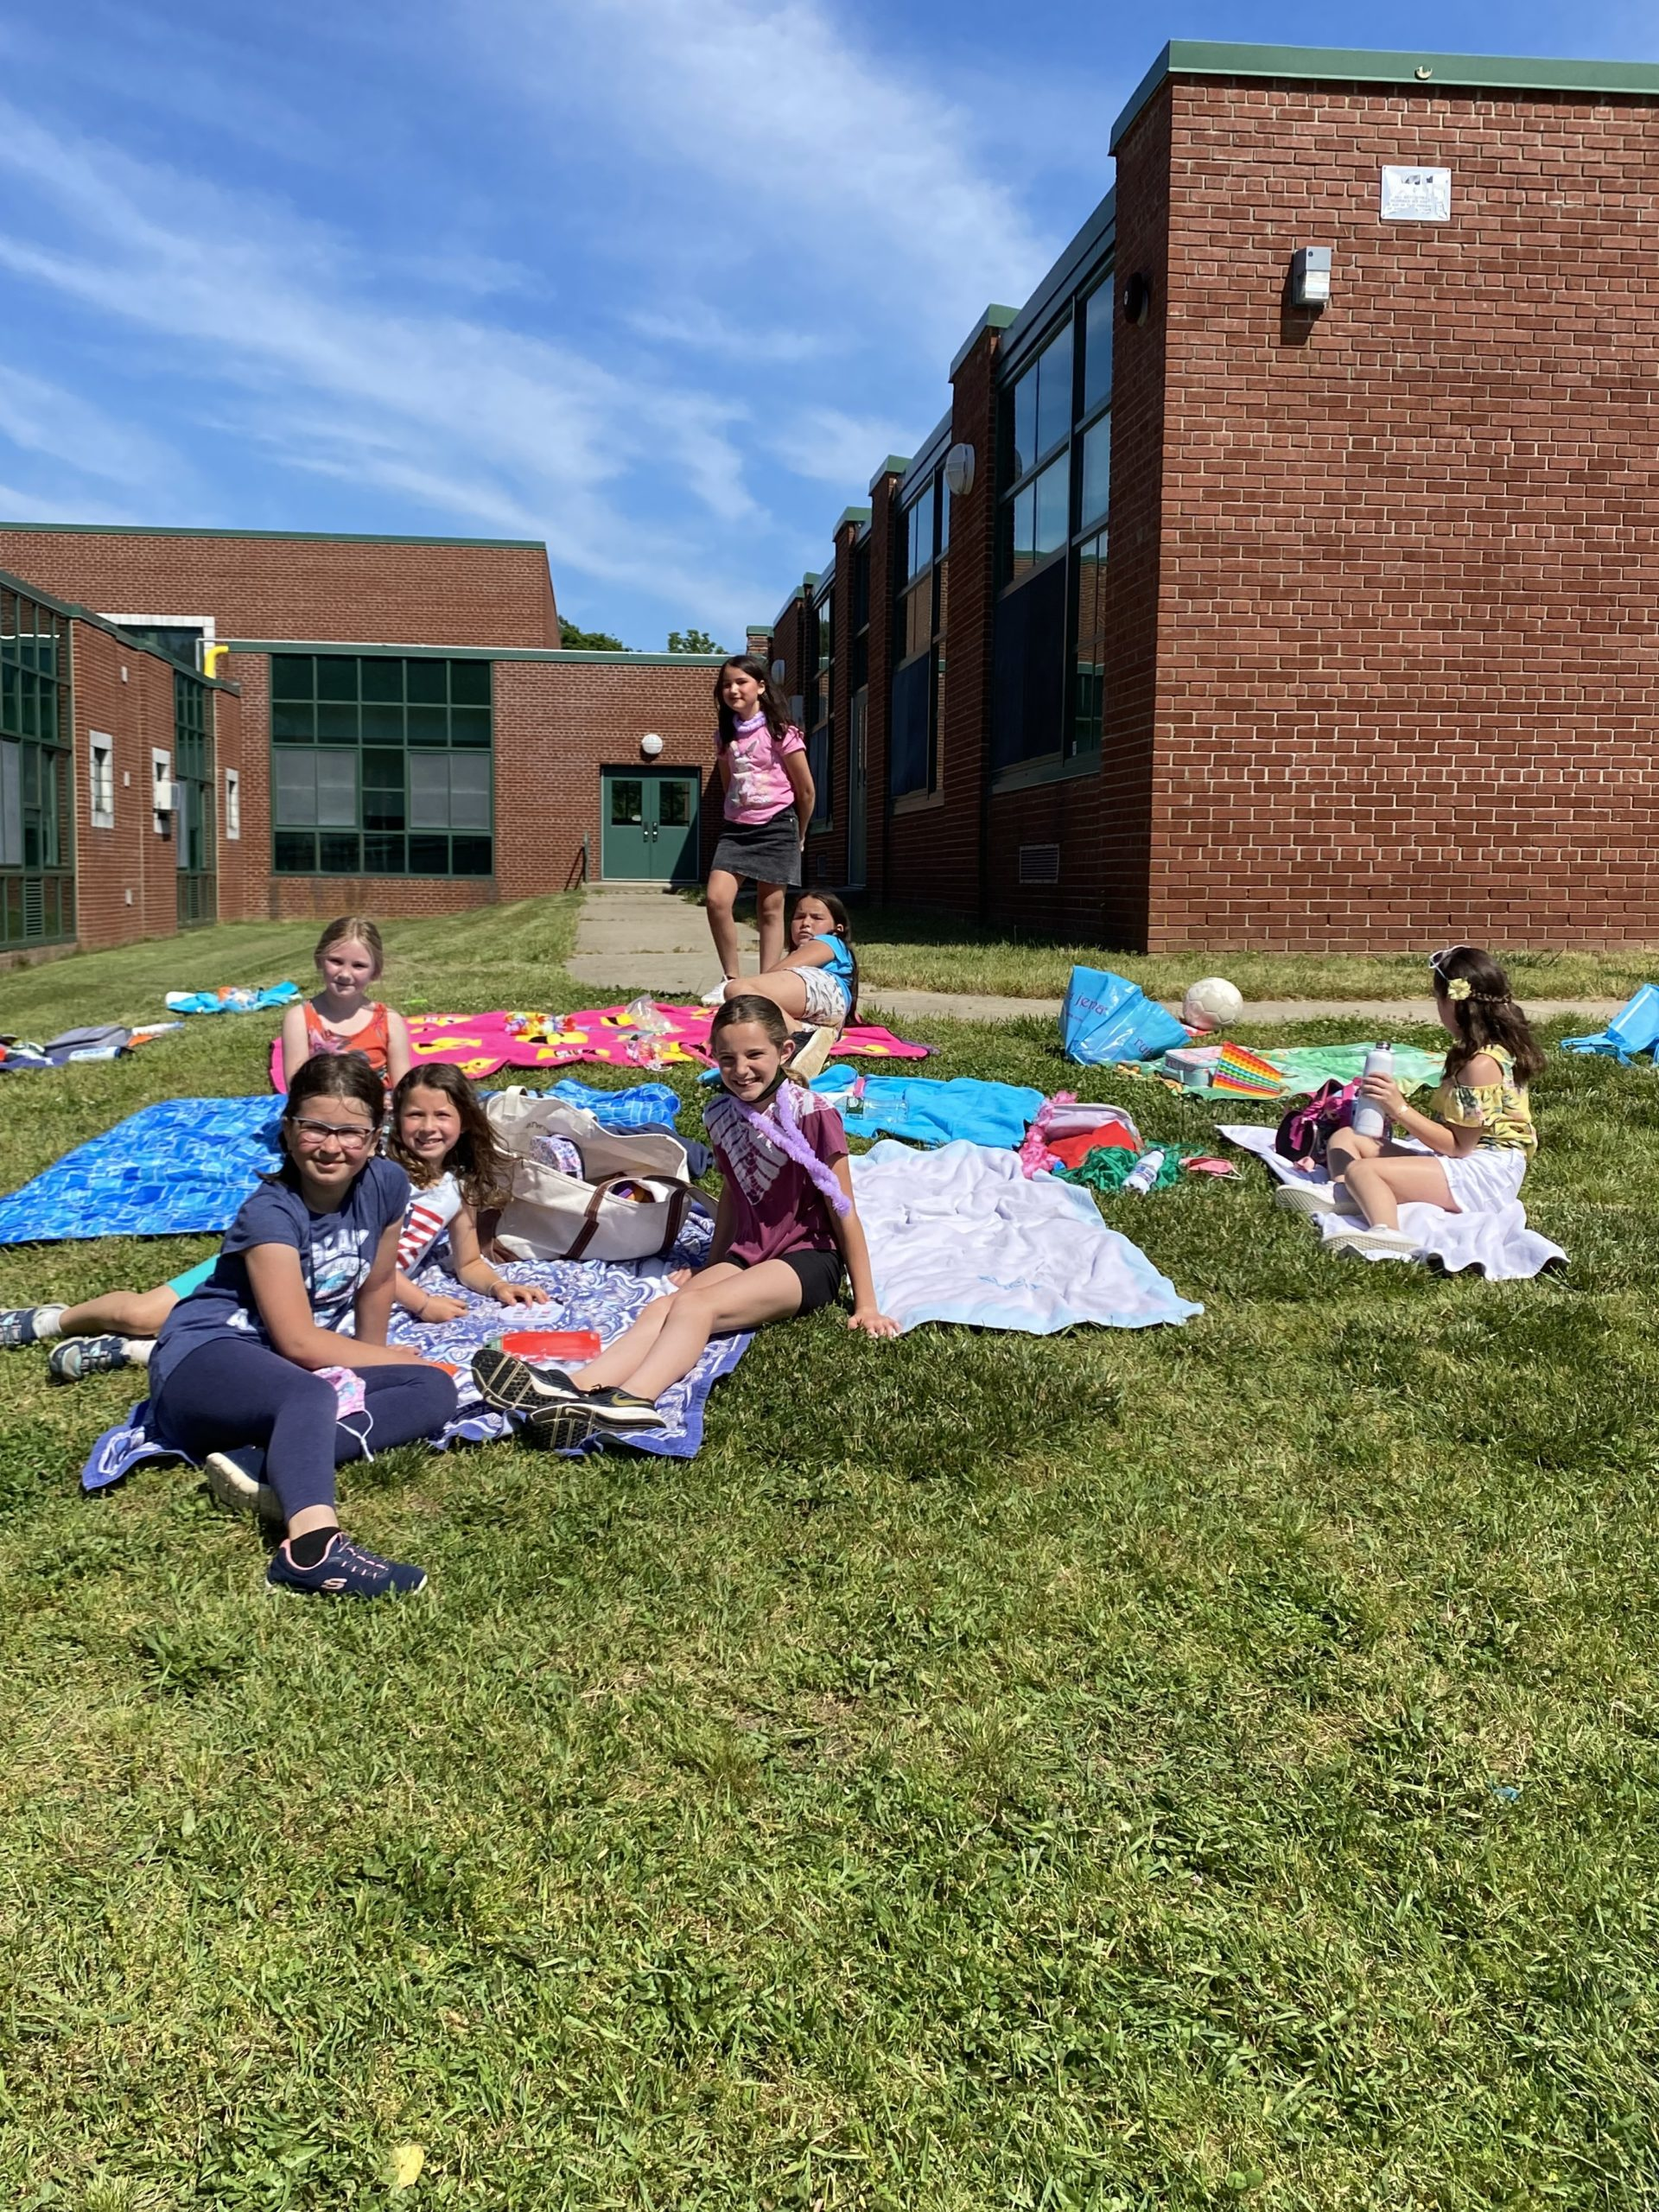 Third graders in Ms. Jennifer Luckingham's class at East Quogue Elementary School celebrated a  year together last week during the last week of school.